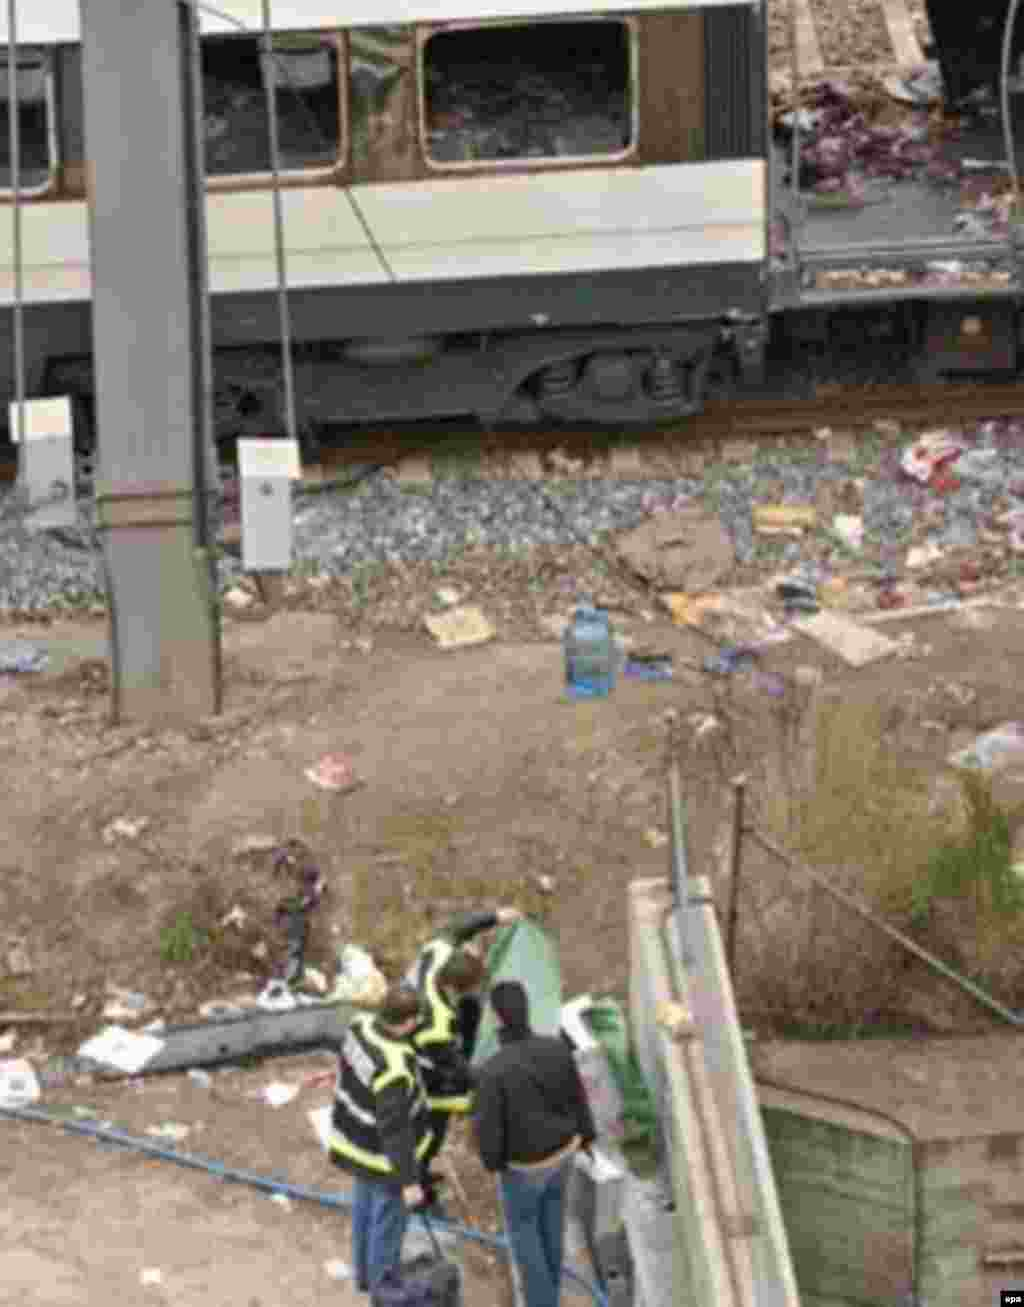 A passenger car that was ripped apart by the Madrid train bombings on March 11, 2004 (epa) - In the worst terrorist attack in Spanish history, more than 190 people were killed and some 1,700 injured when 10 bombs exploded in coordinated attacks against four crowded commuter trains. In general elections shortly afterward, Spaniards rejected their pro-U.S. government in favor of one that advocated pulling Spanish troops out of Iraq.